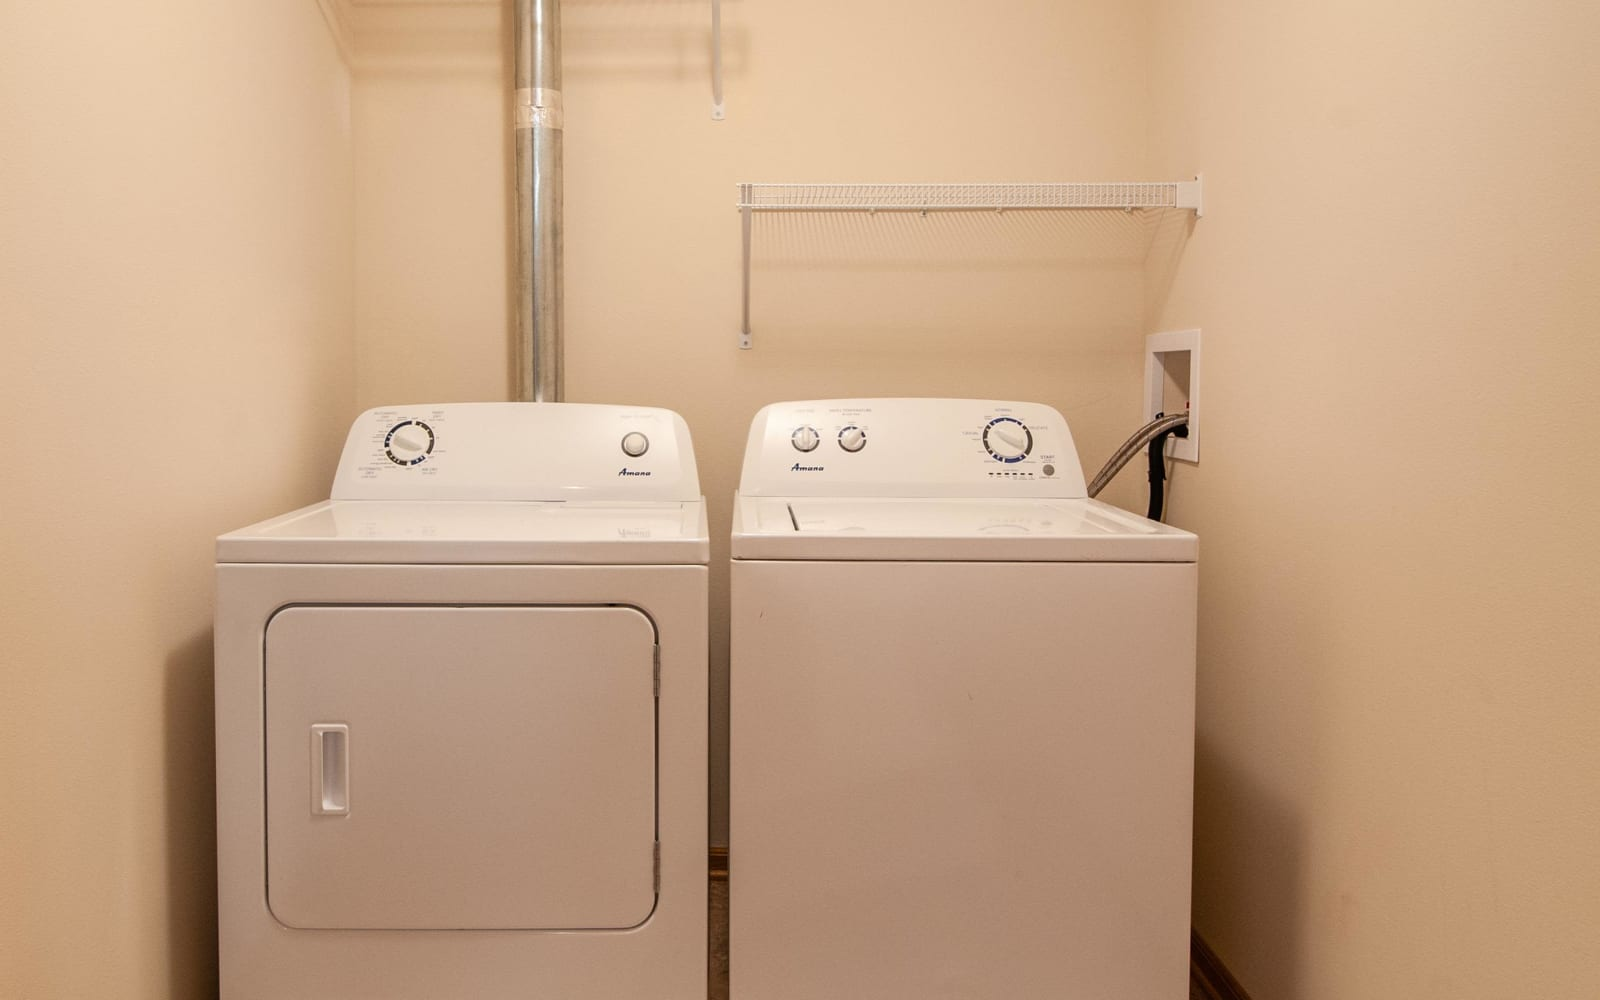 Washer and dryer at South Meadow in Ames, Iowa.